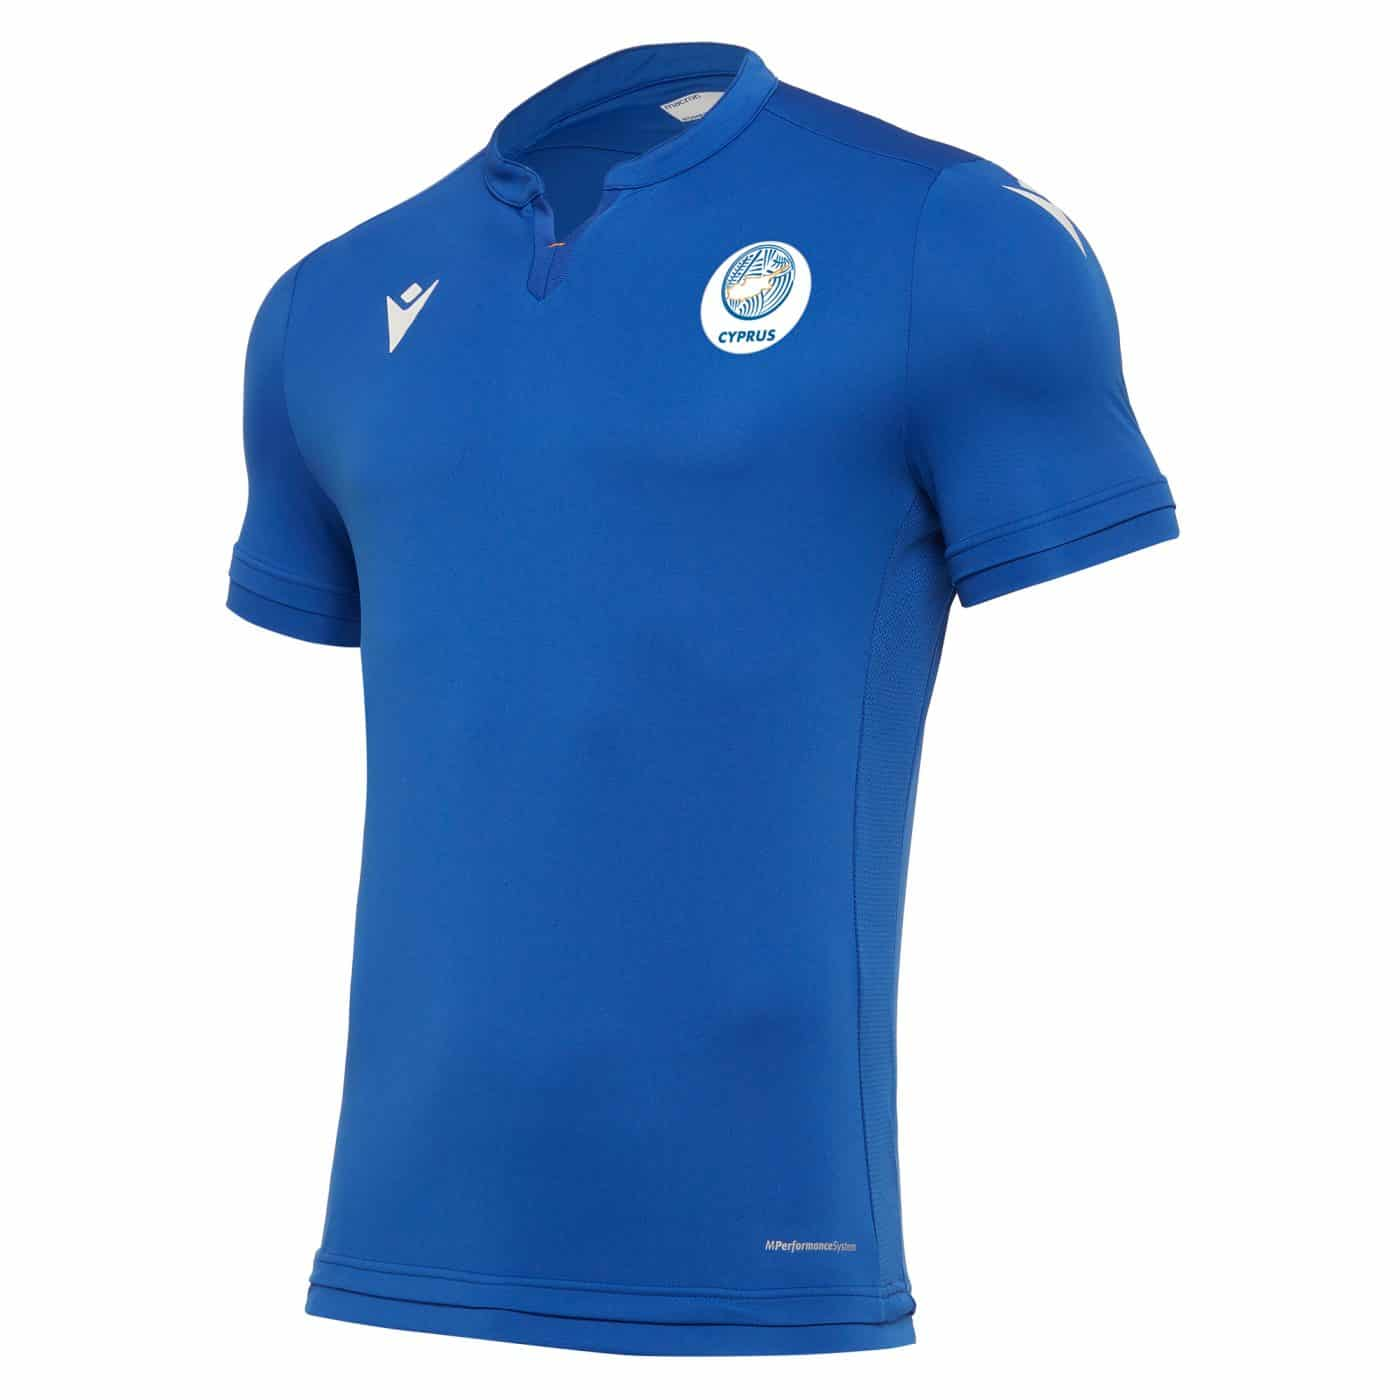 maillot-domicile-chypre-2020-2021-macron-uefa-cyprus-jersey